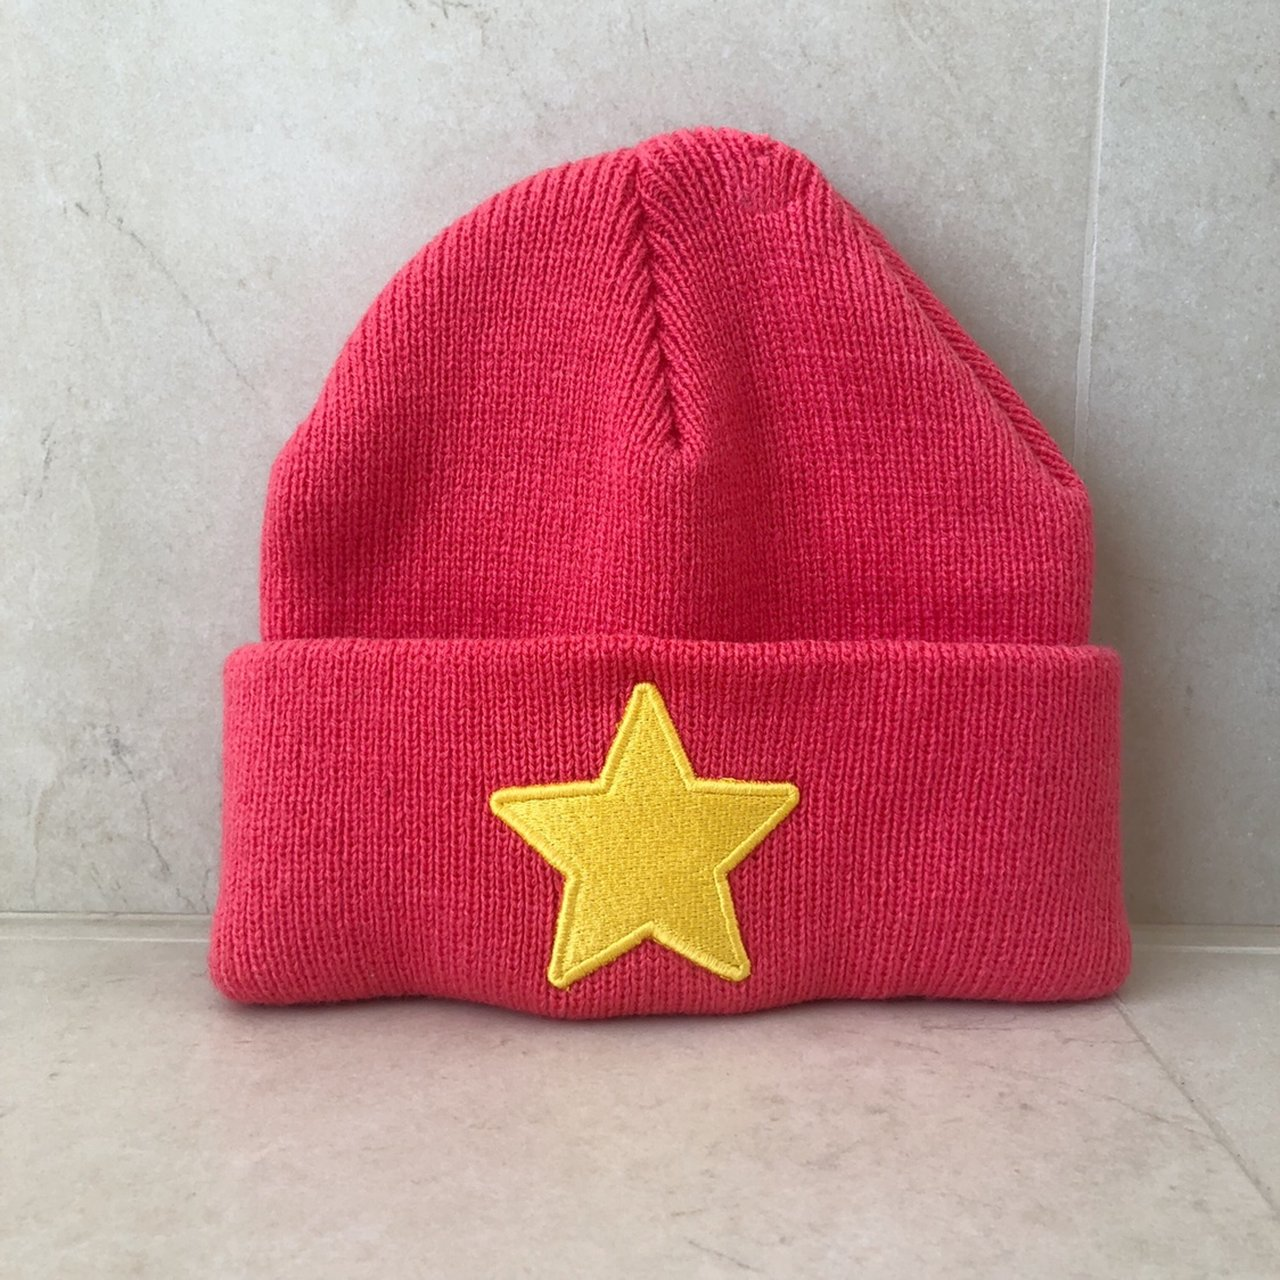 58c73ca3156 PINK STEVEN UNIVERSE EMBROIDERED STAR BEANIE 💕💞✨ • this is - Depop